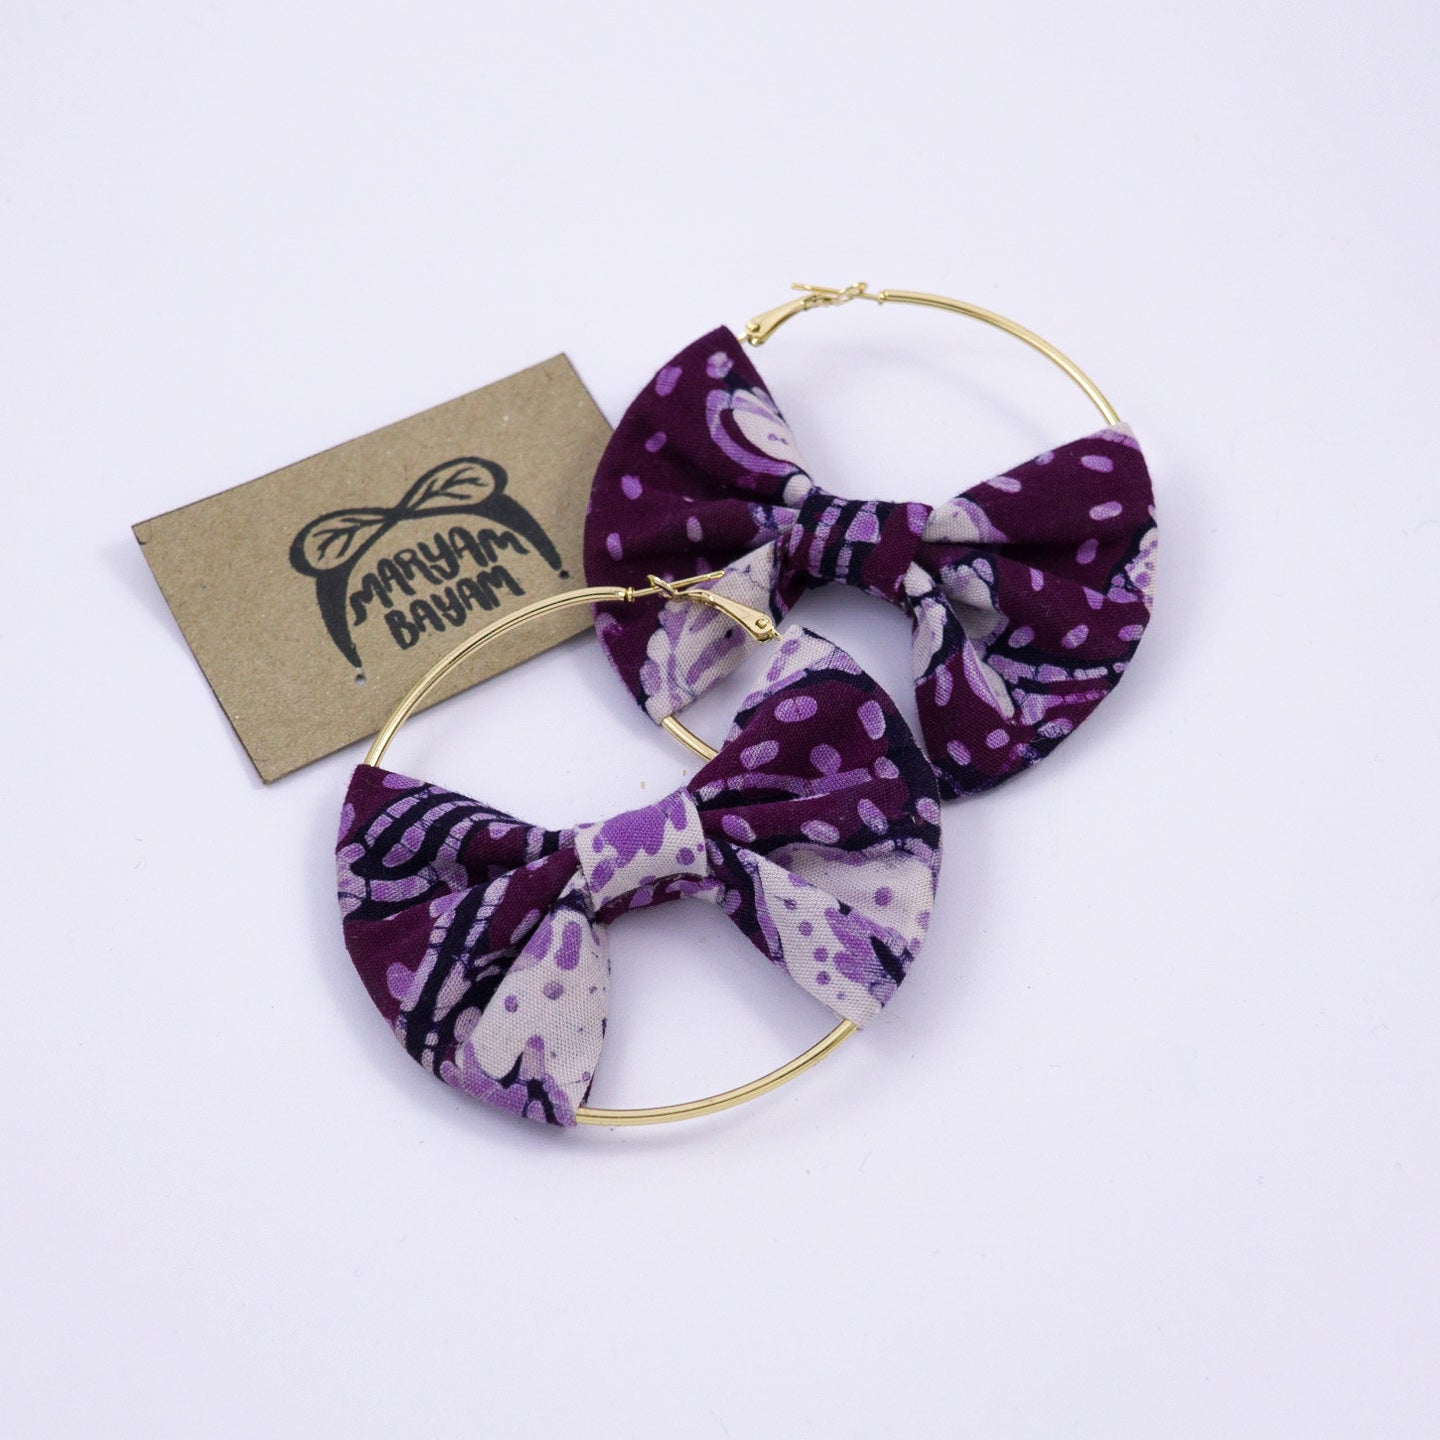 HALEY Batik Bow Hoops - MaryamBayam – Better in Batik